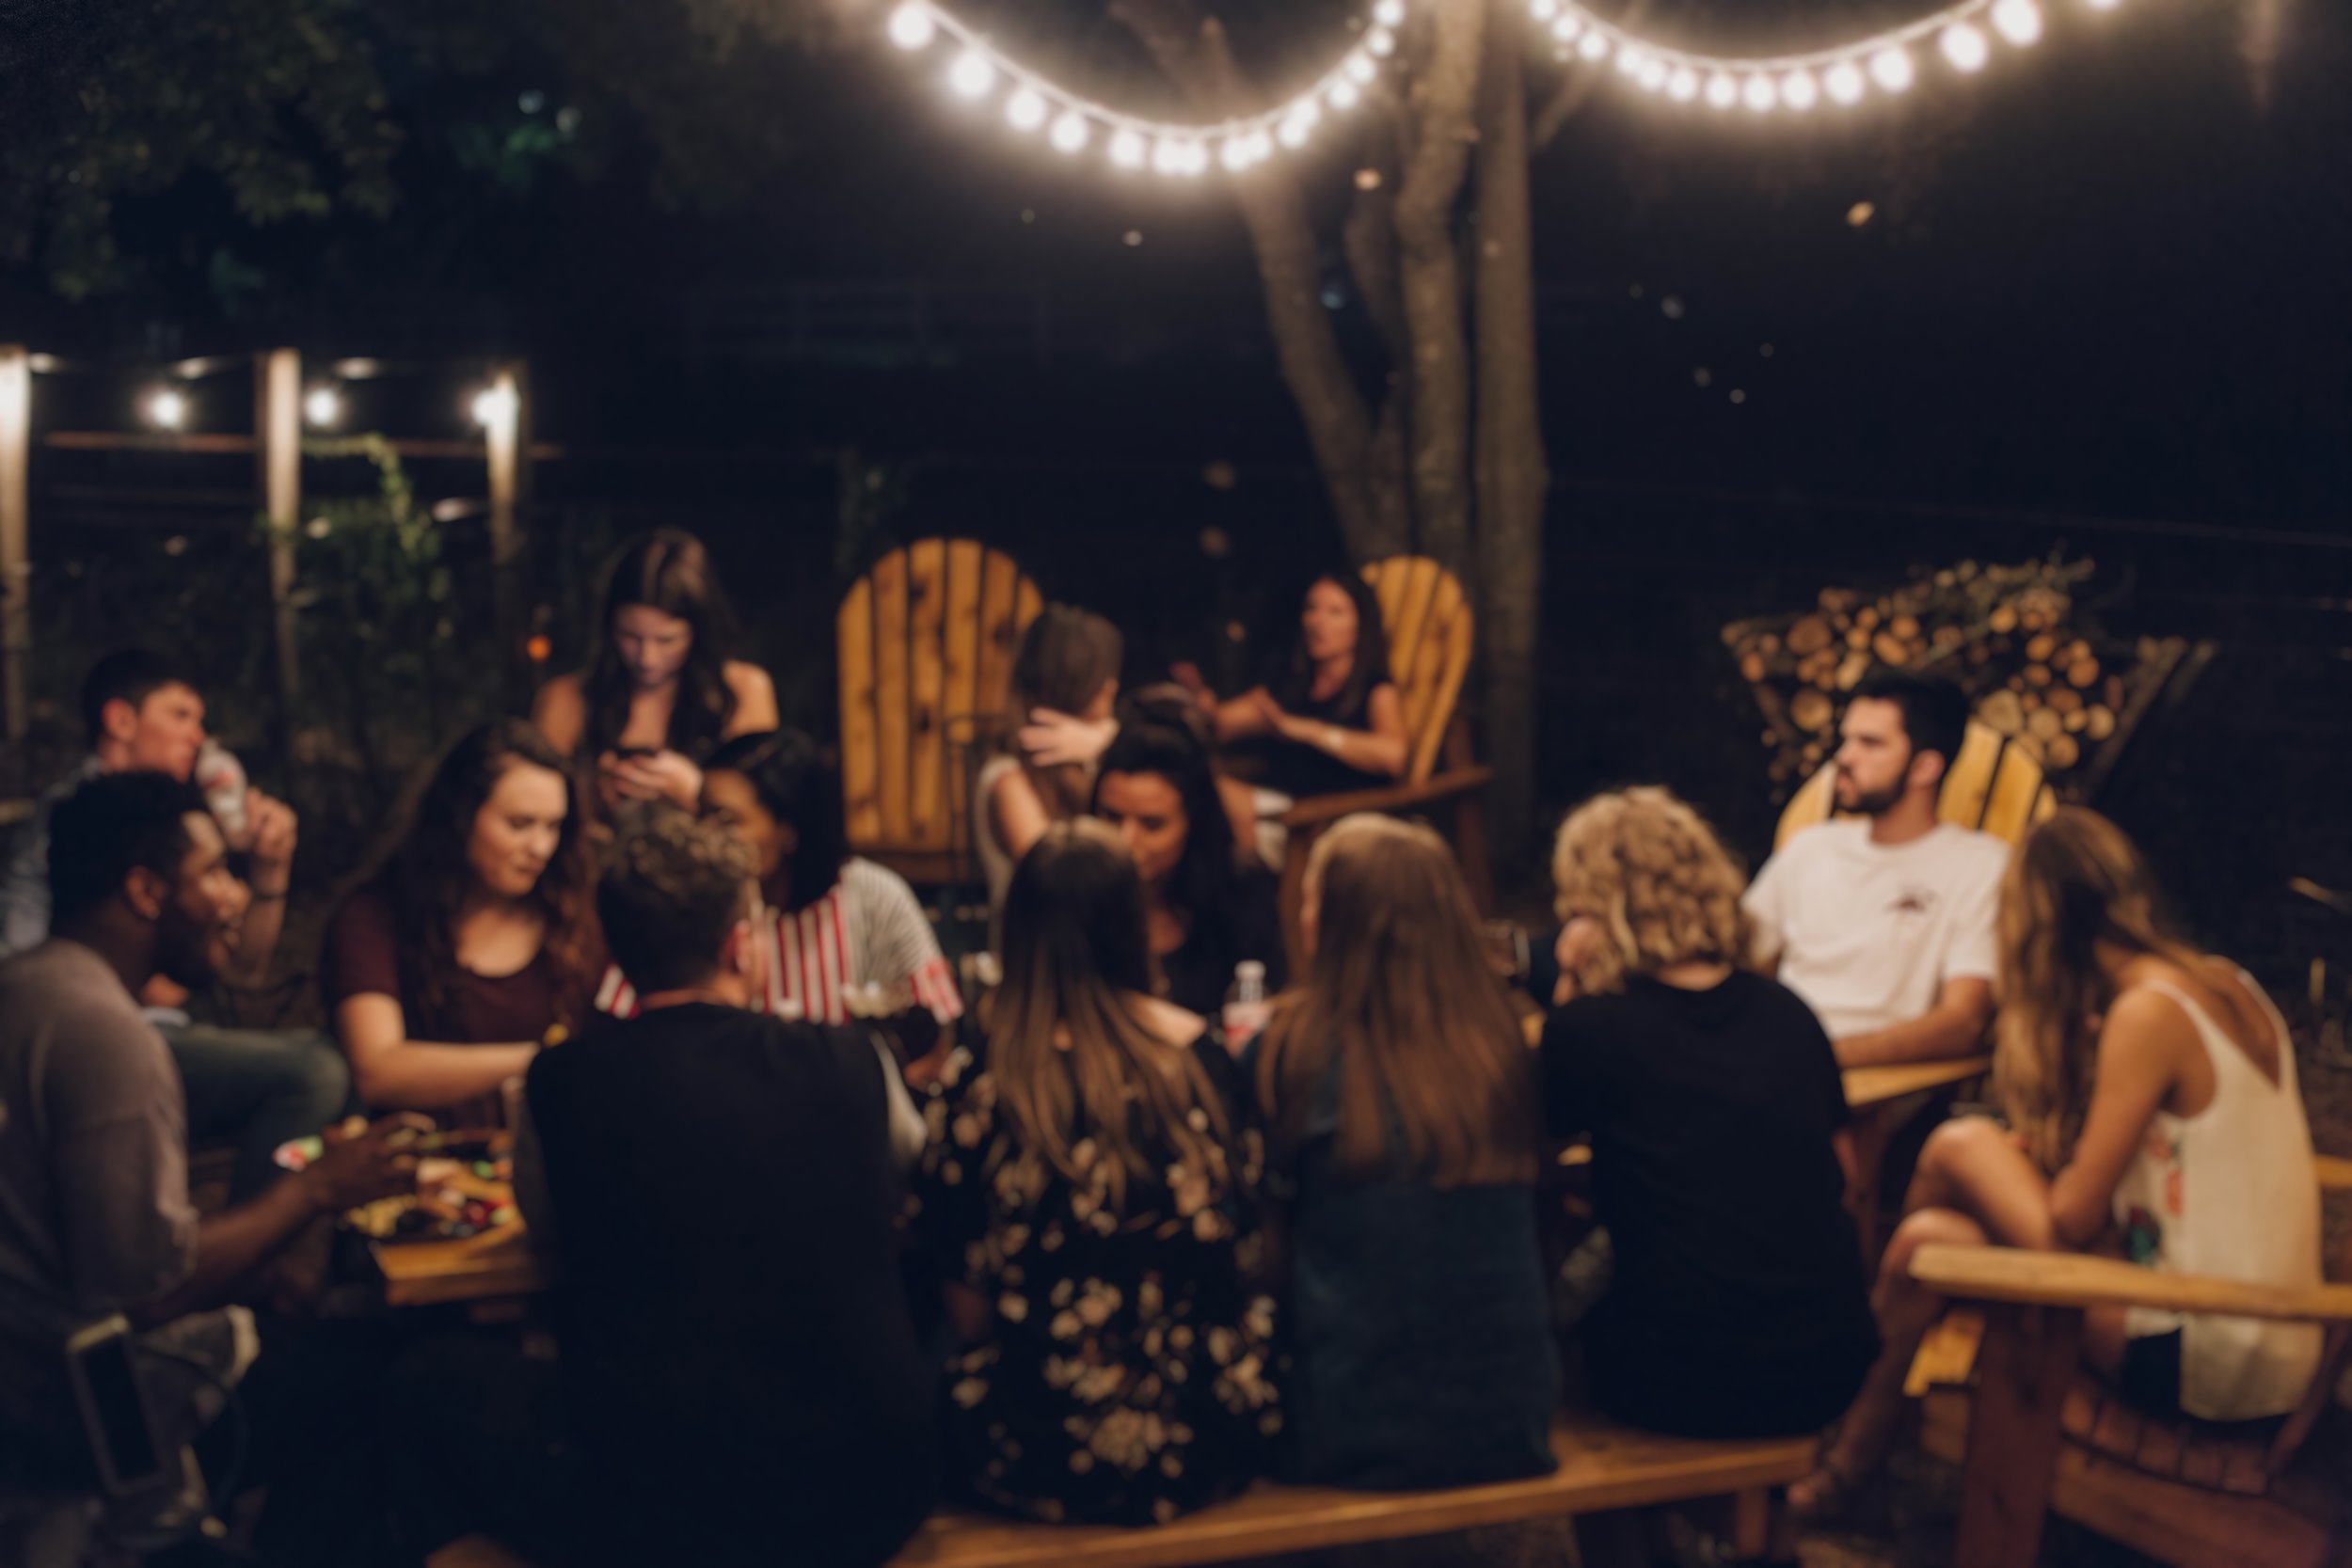 Community Groups - Get Connected by joining a community group. At Love City we believe the Bible calls us to live in authentic community with one another.